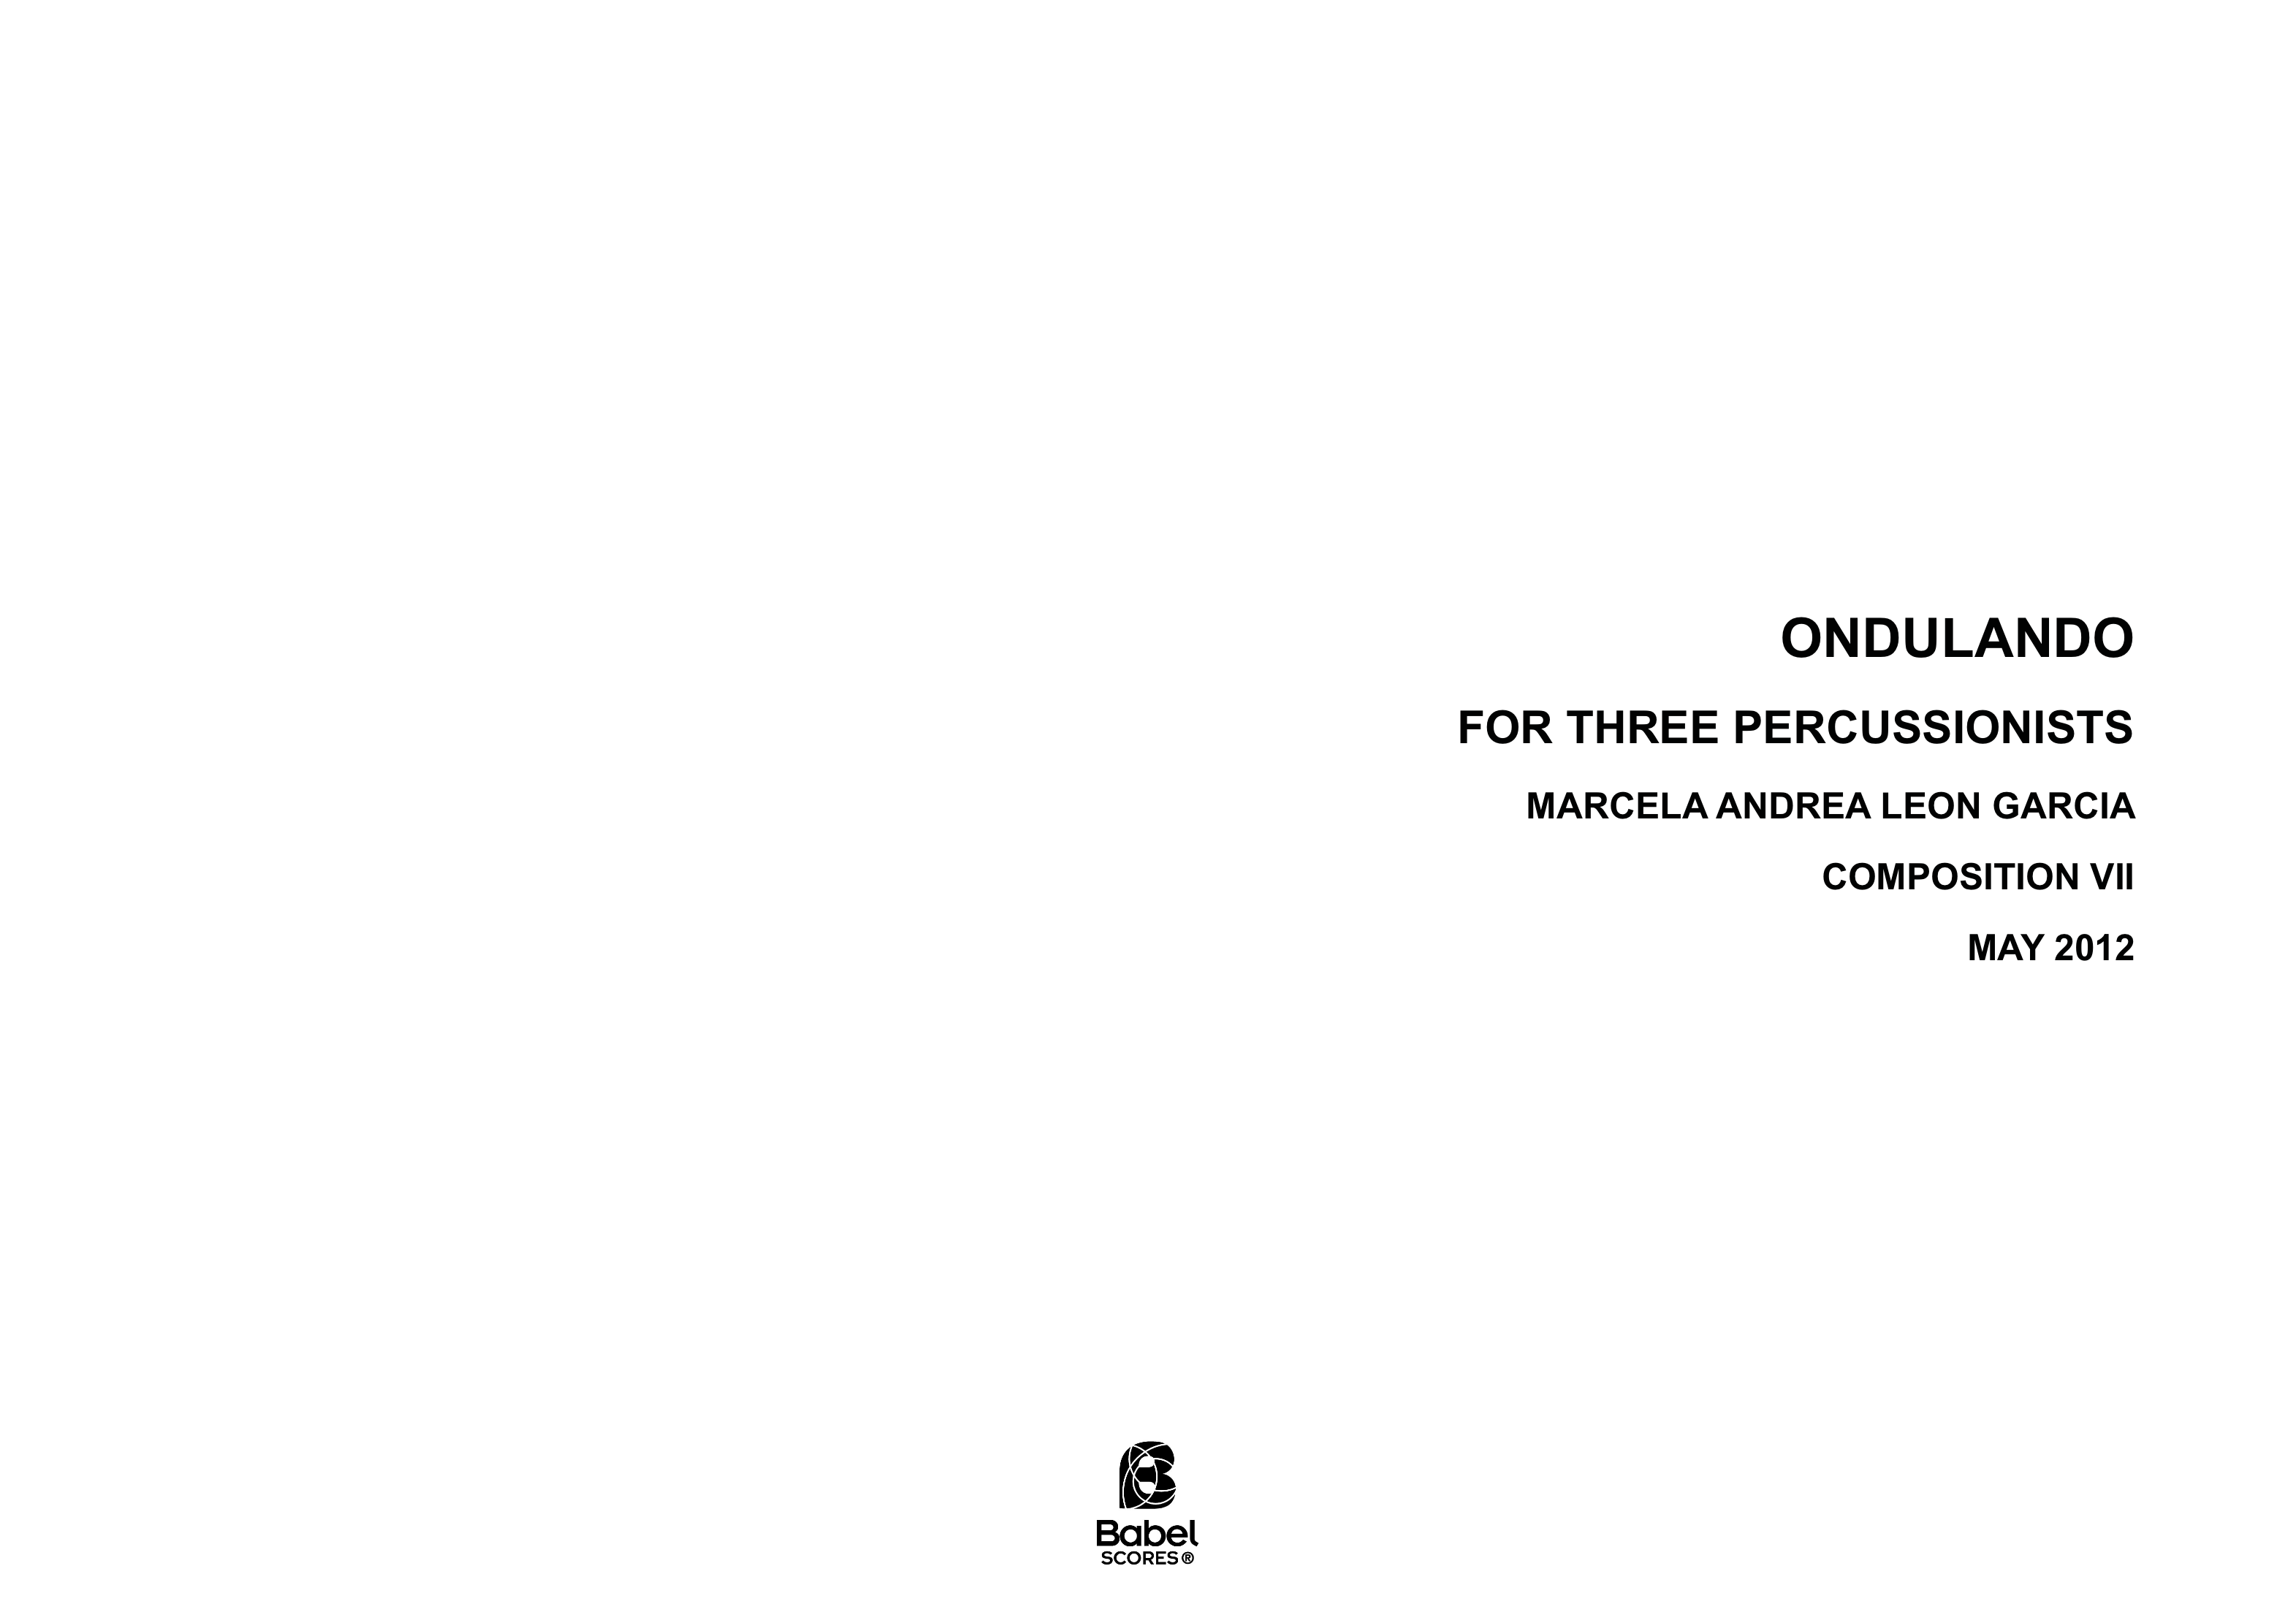 Ondulando for three percussionists A3 z 3 271 1 129